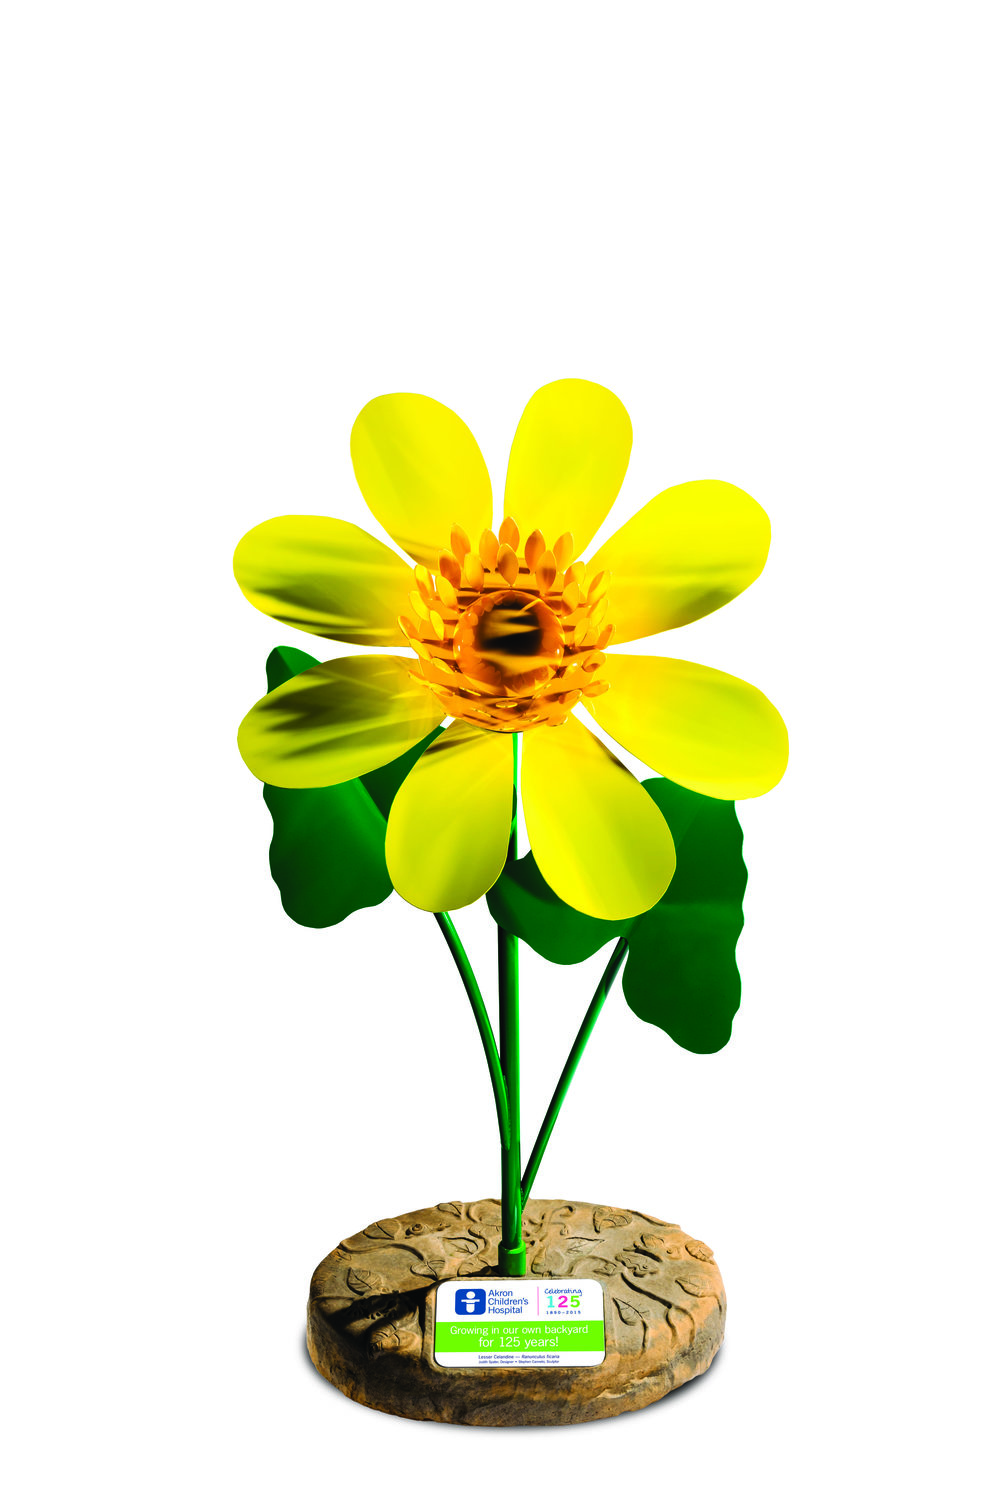 LesserCelandine_plaque_4CHR - Copy.jpg